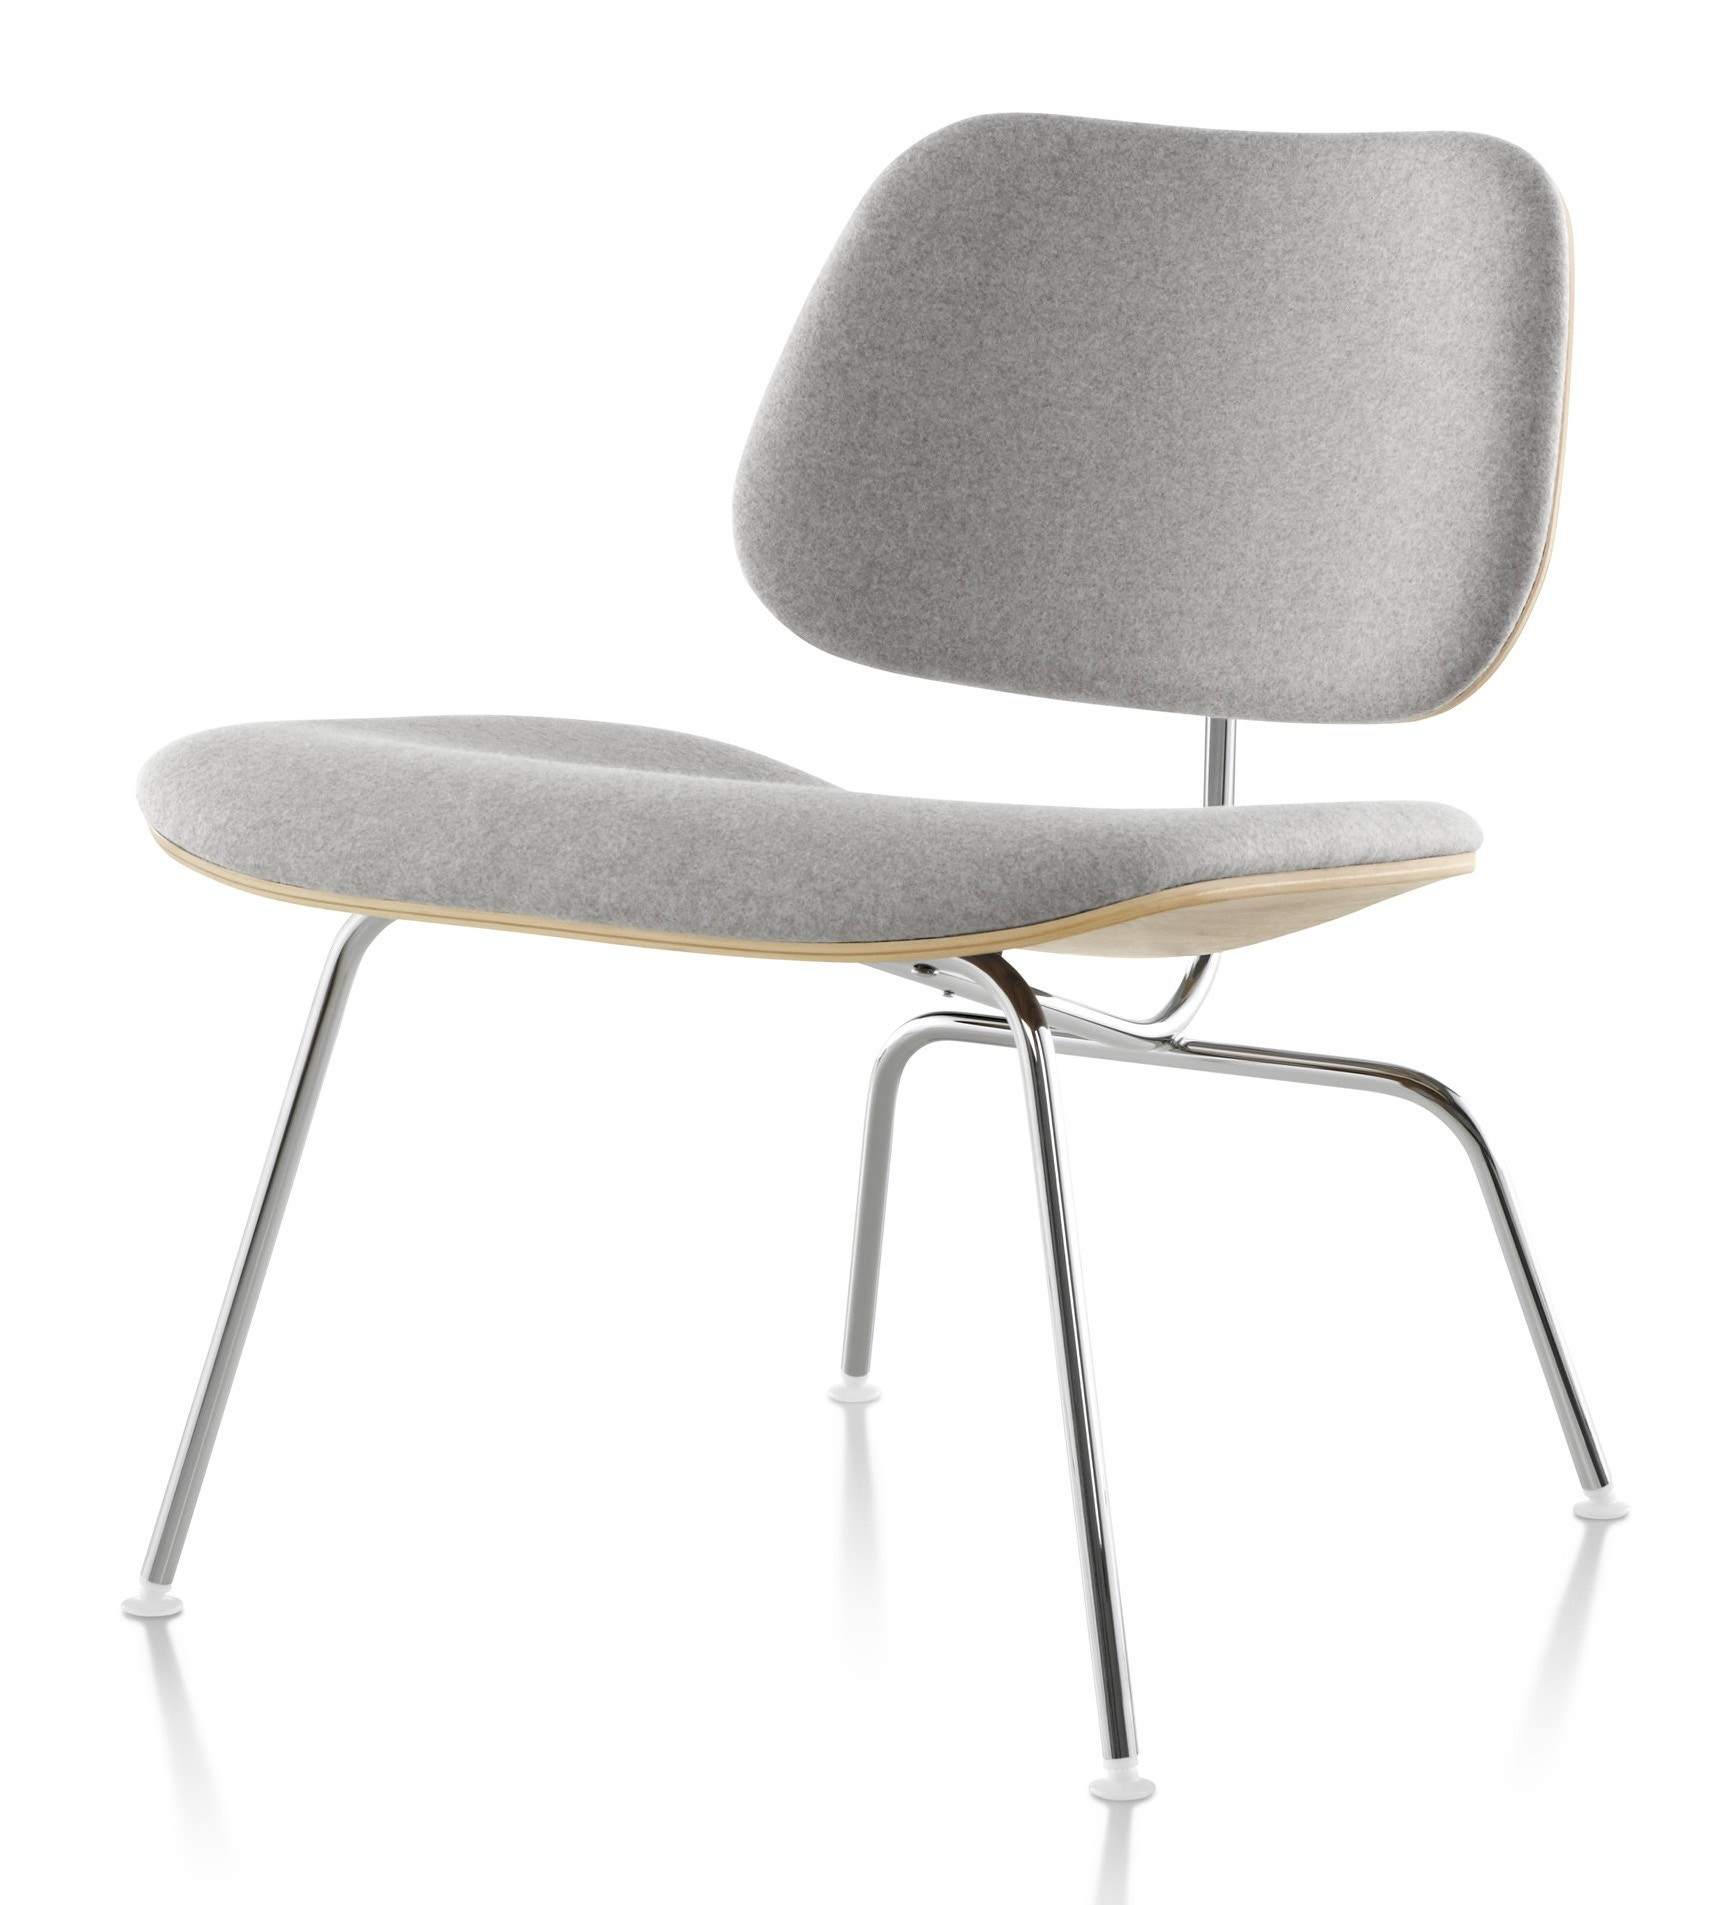 Metal lounge chair best home design 2018 for Metal design chair